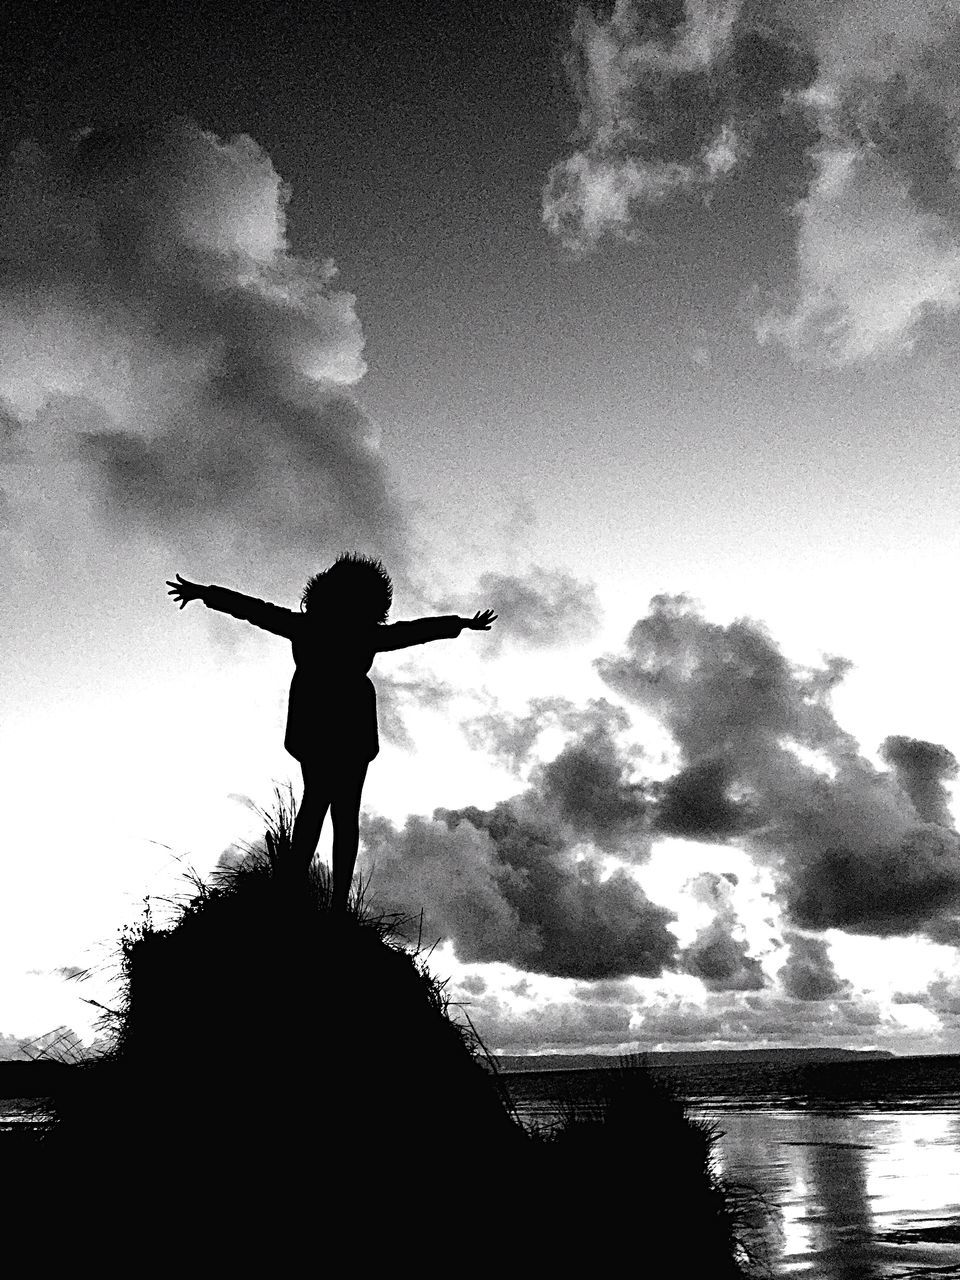 sky, standing, silhouette, men, cloud - sky, real people, one person, water, day, outdoors, nature, full length, one man only, people